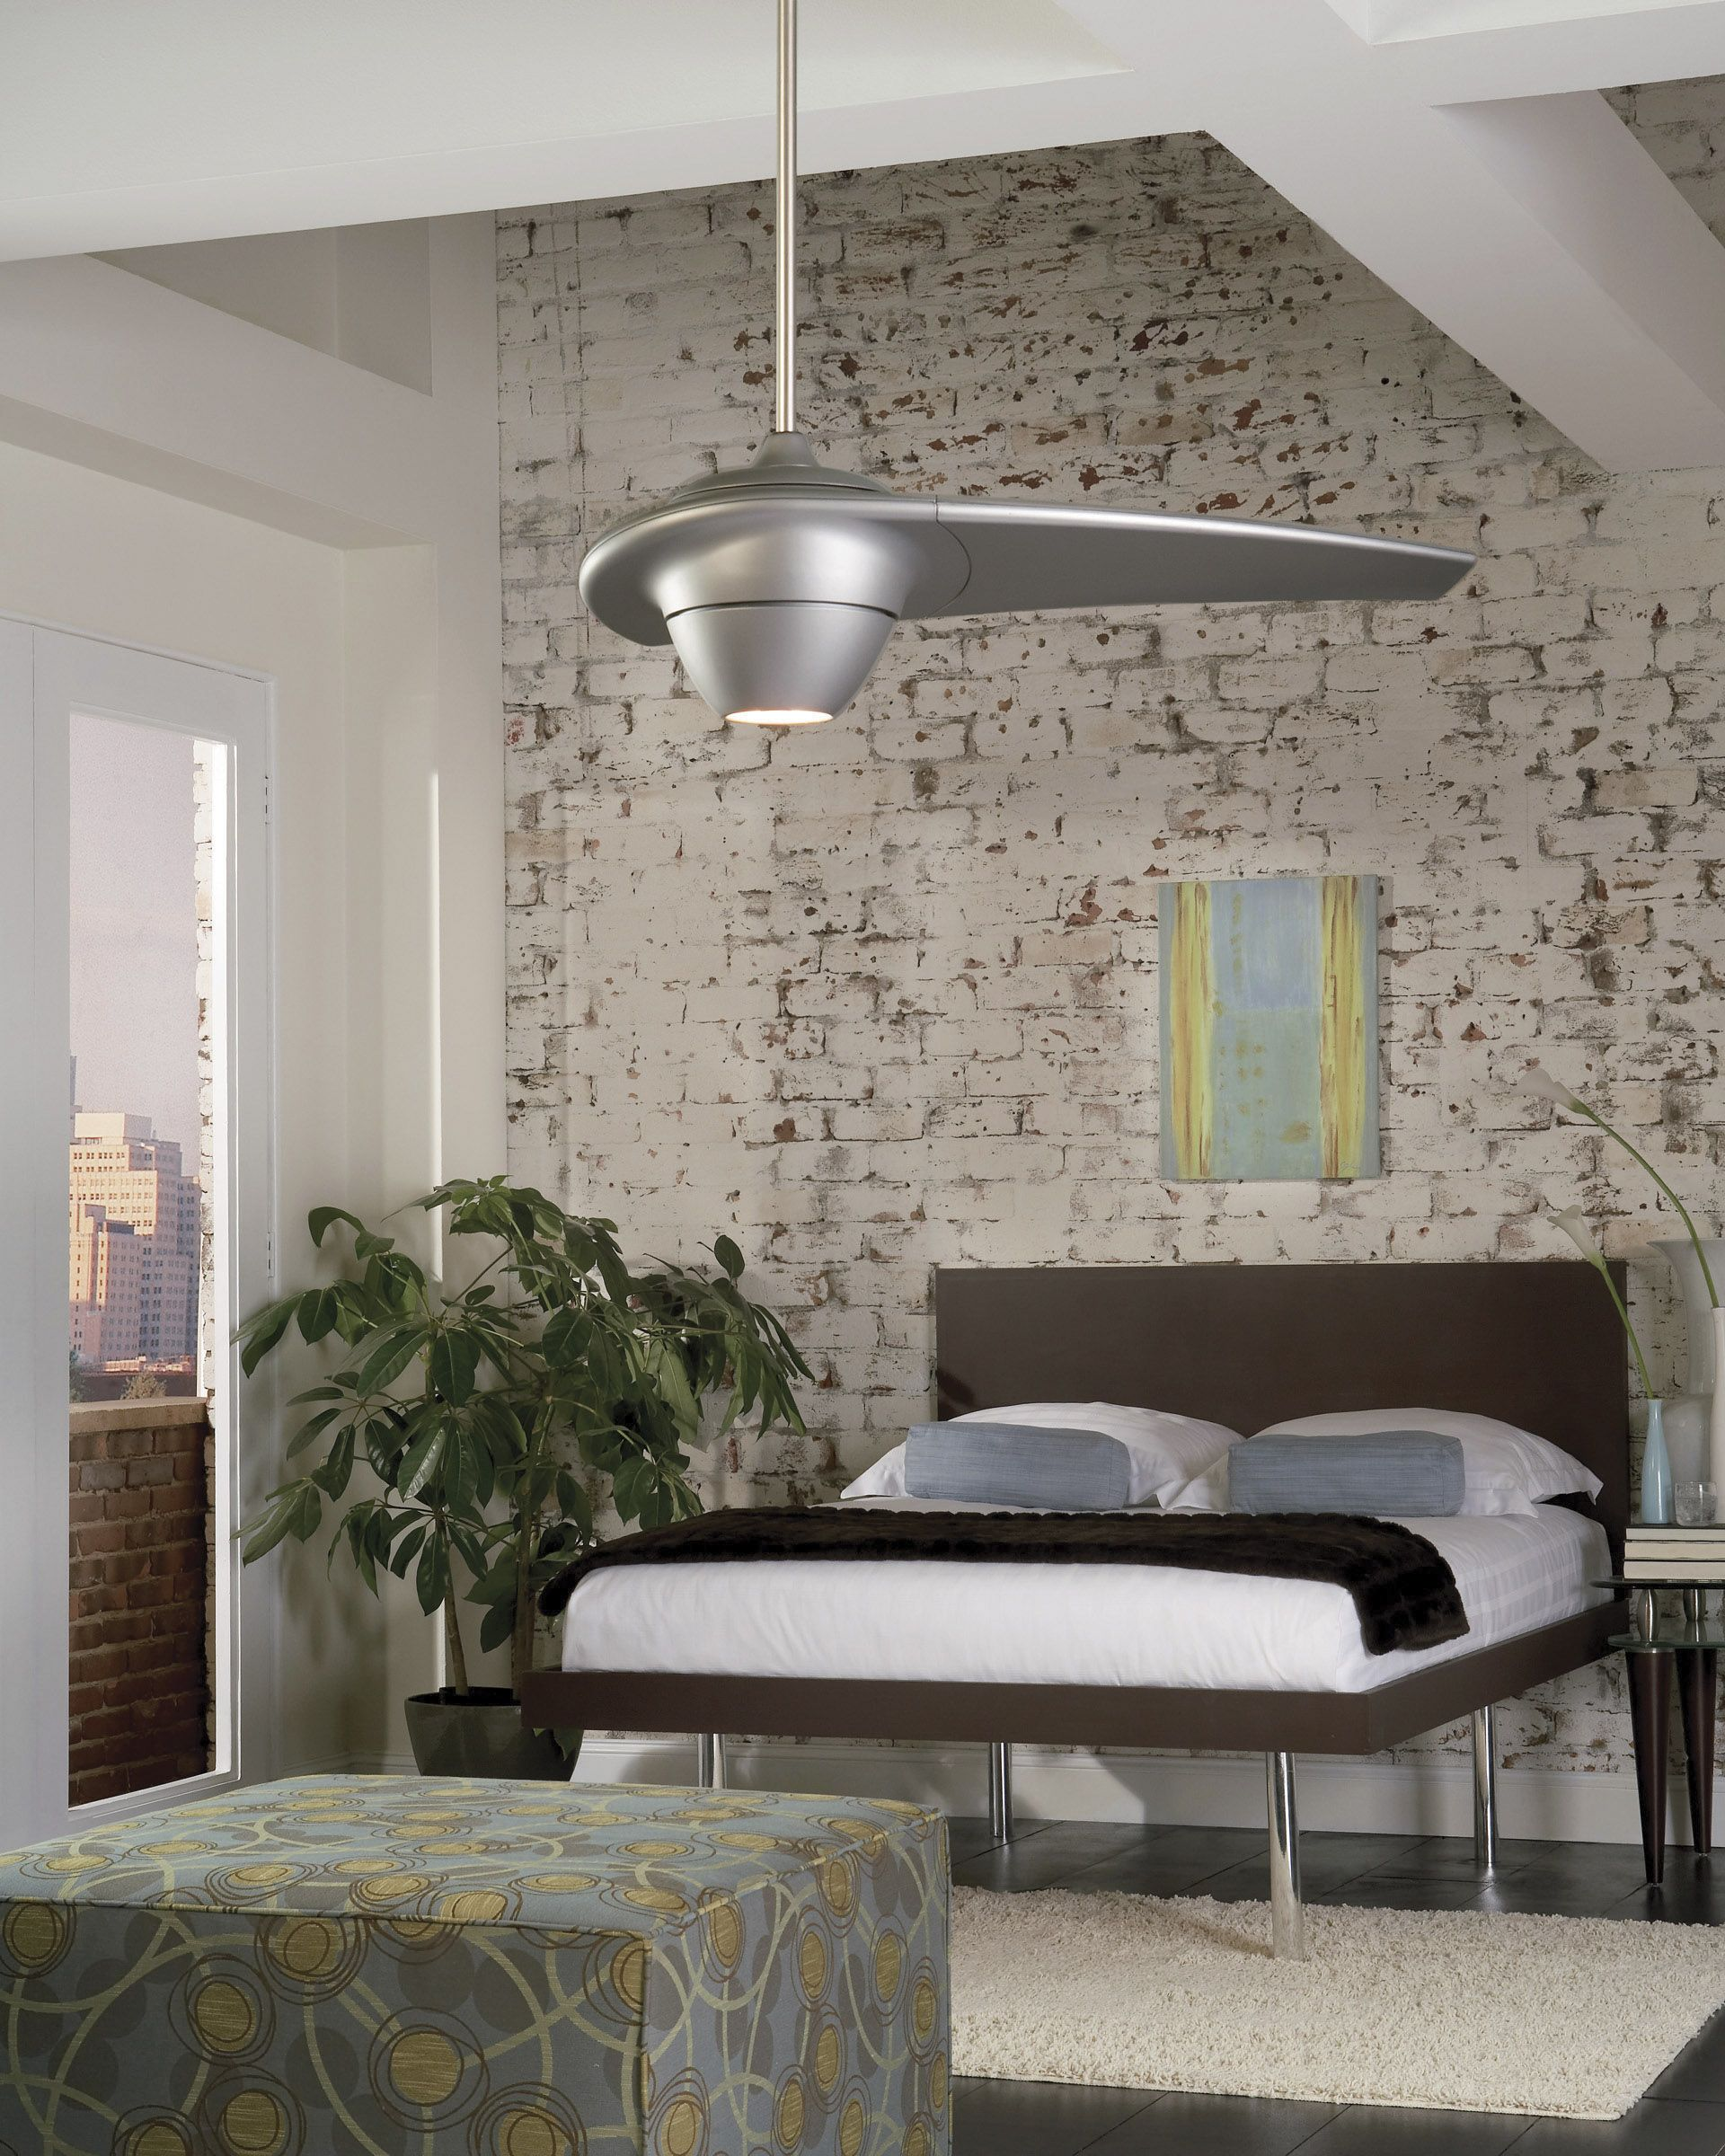 Did You Know The Fanimation Enigma Ceiling Fan Was Featured In The